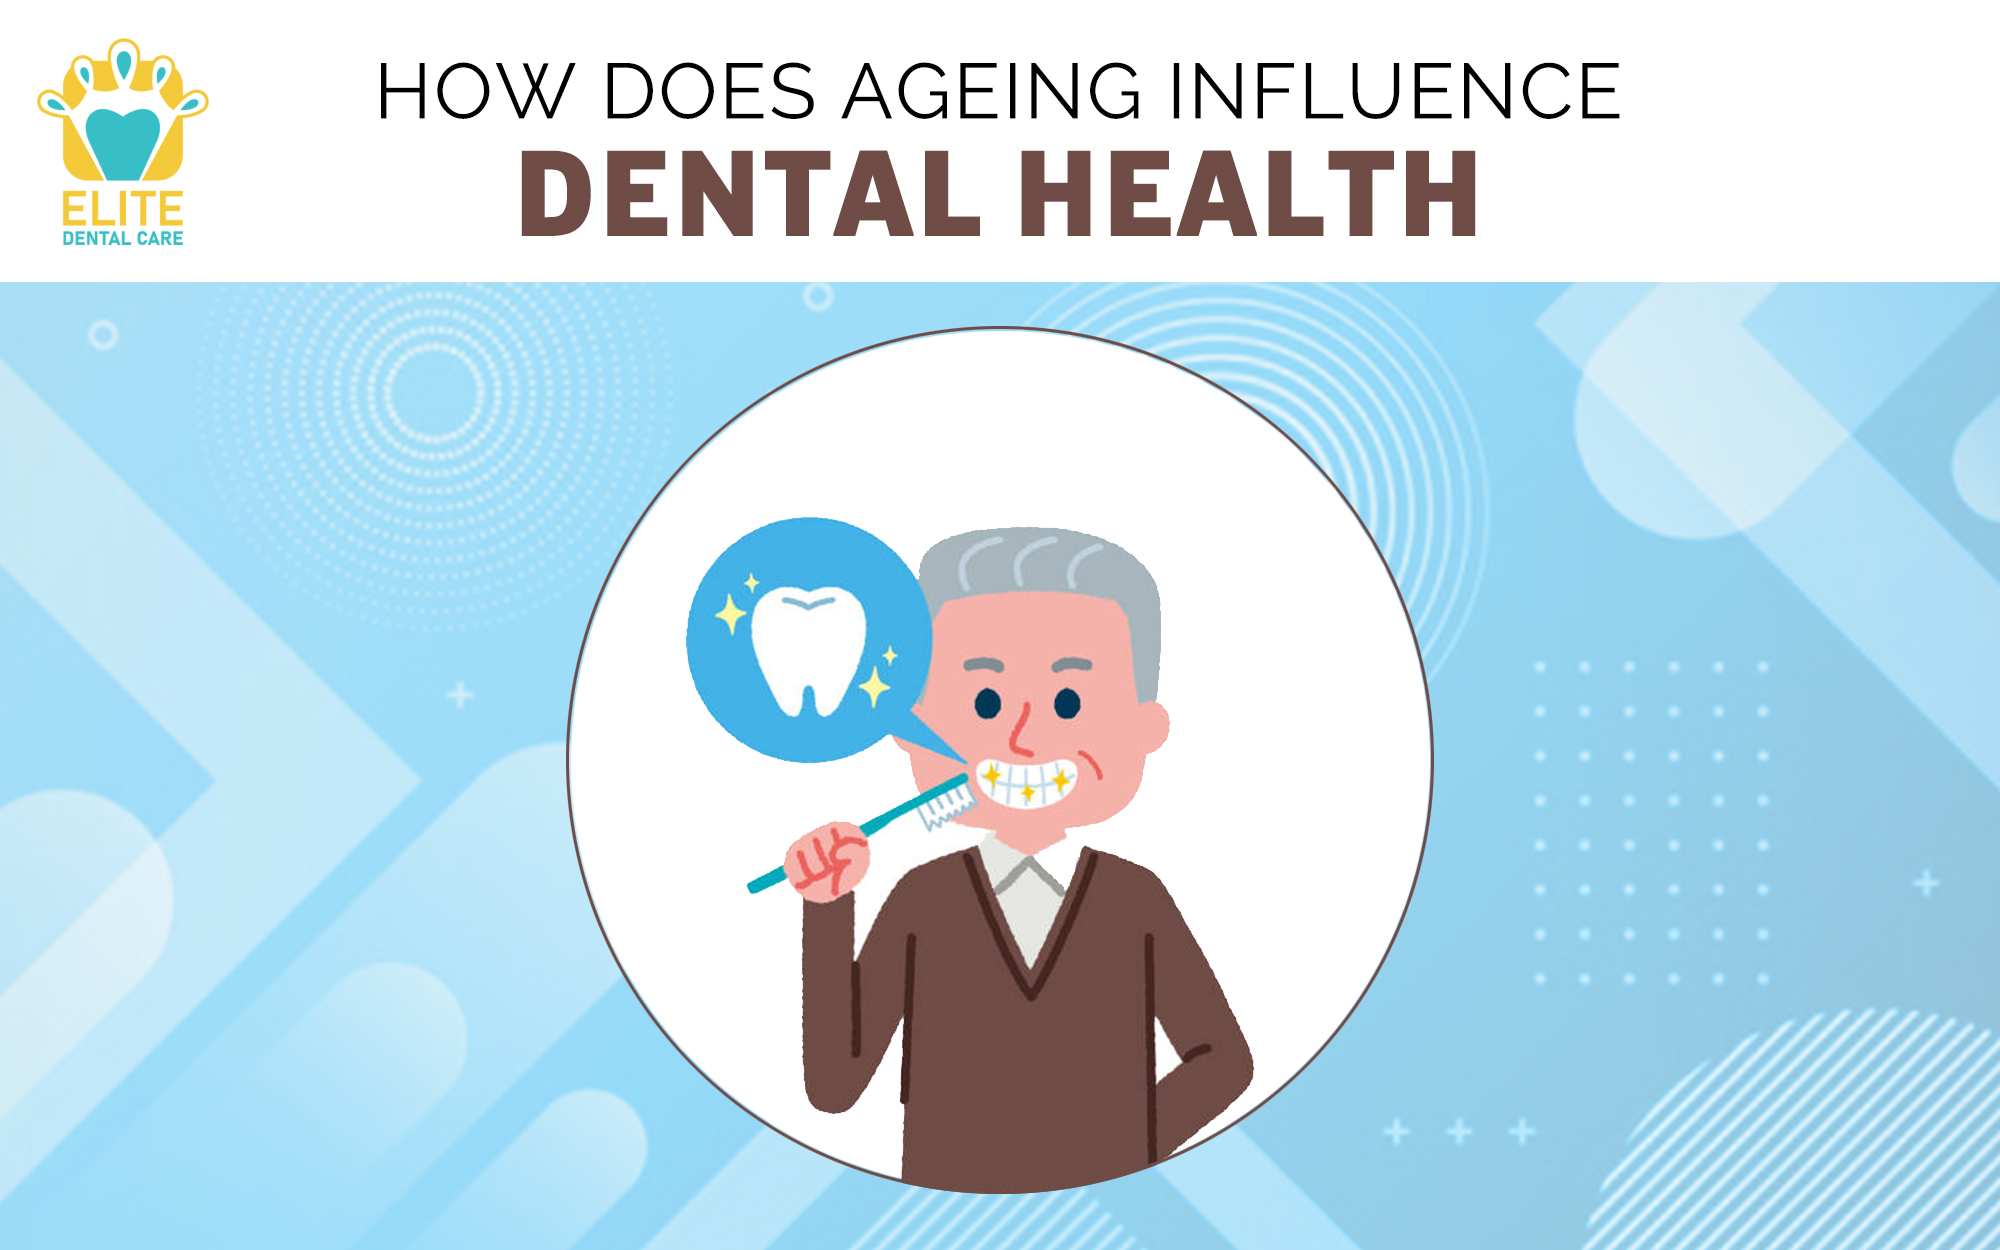 HOW DOES AGING AFFECT DENTAL HEALTH